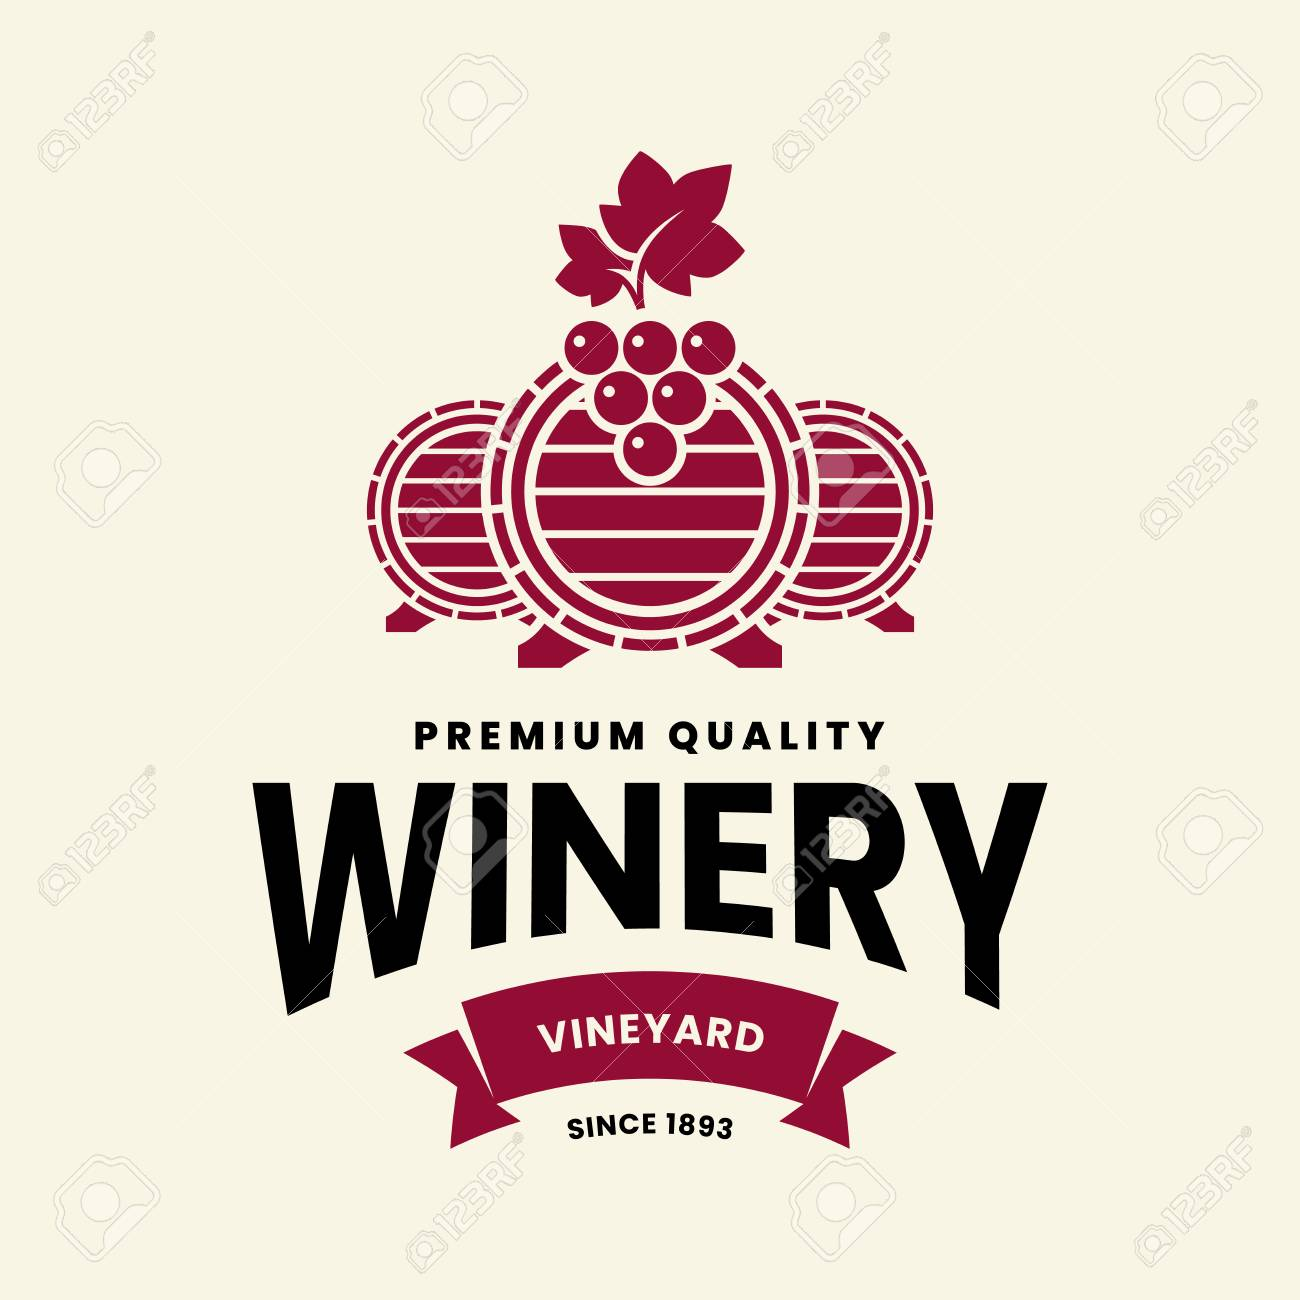 Modern wine vector logo sign for tavern, restaurant, house, shop, store, club and cellar isolated on light background. Premium quality vinery logotype illustration. Fashion brand badge design template. - 126498879